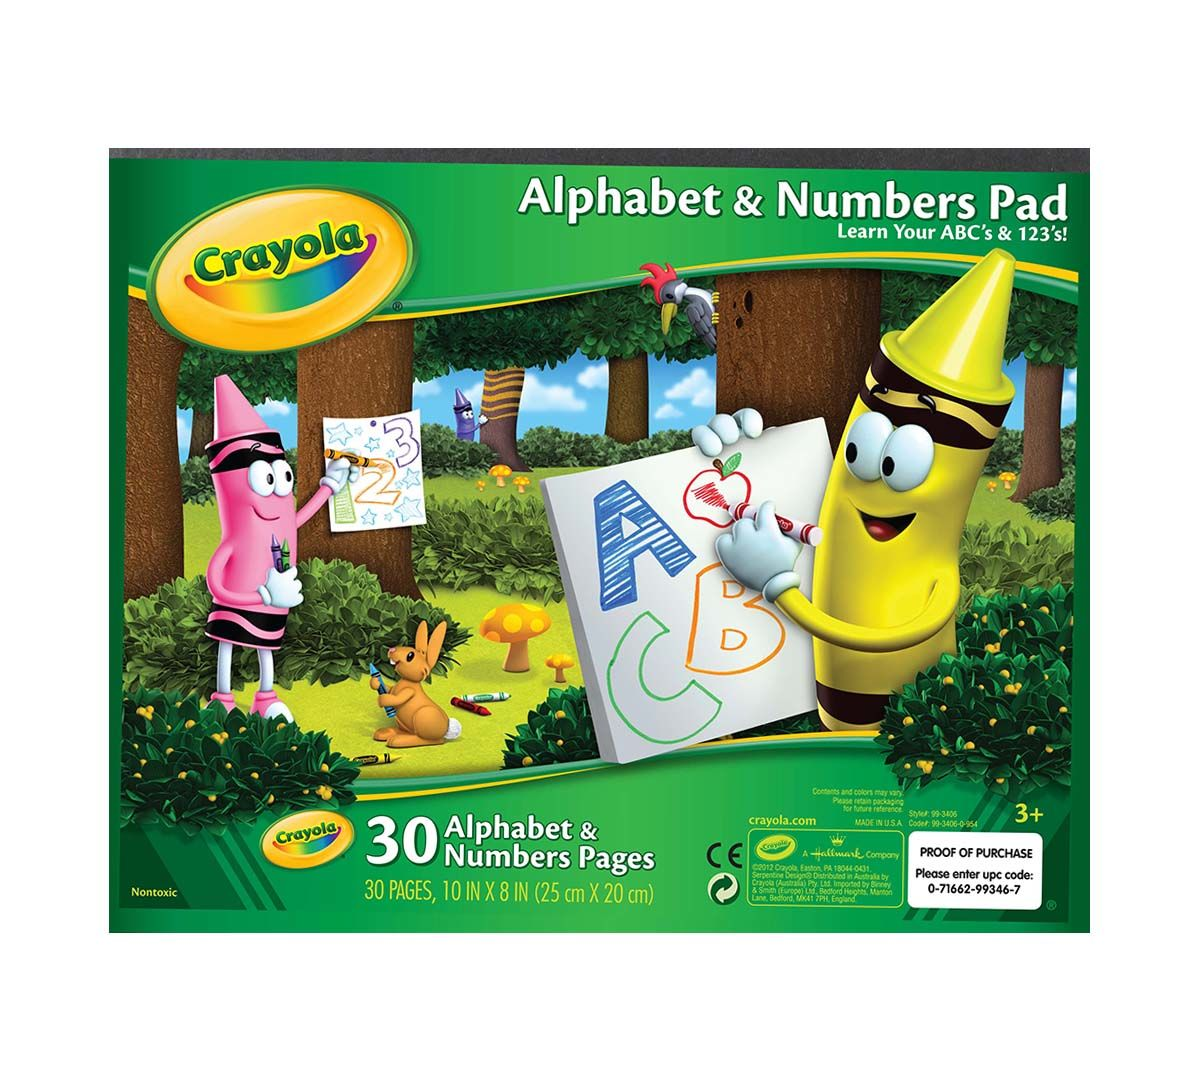 Crayola Alphabet and Numbers Pad